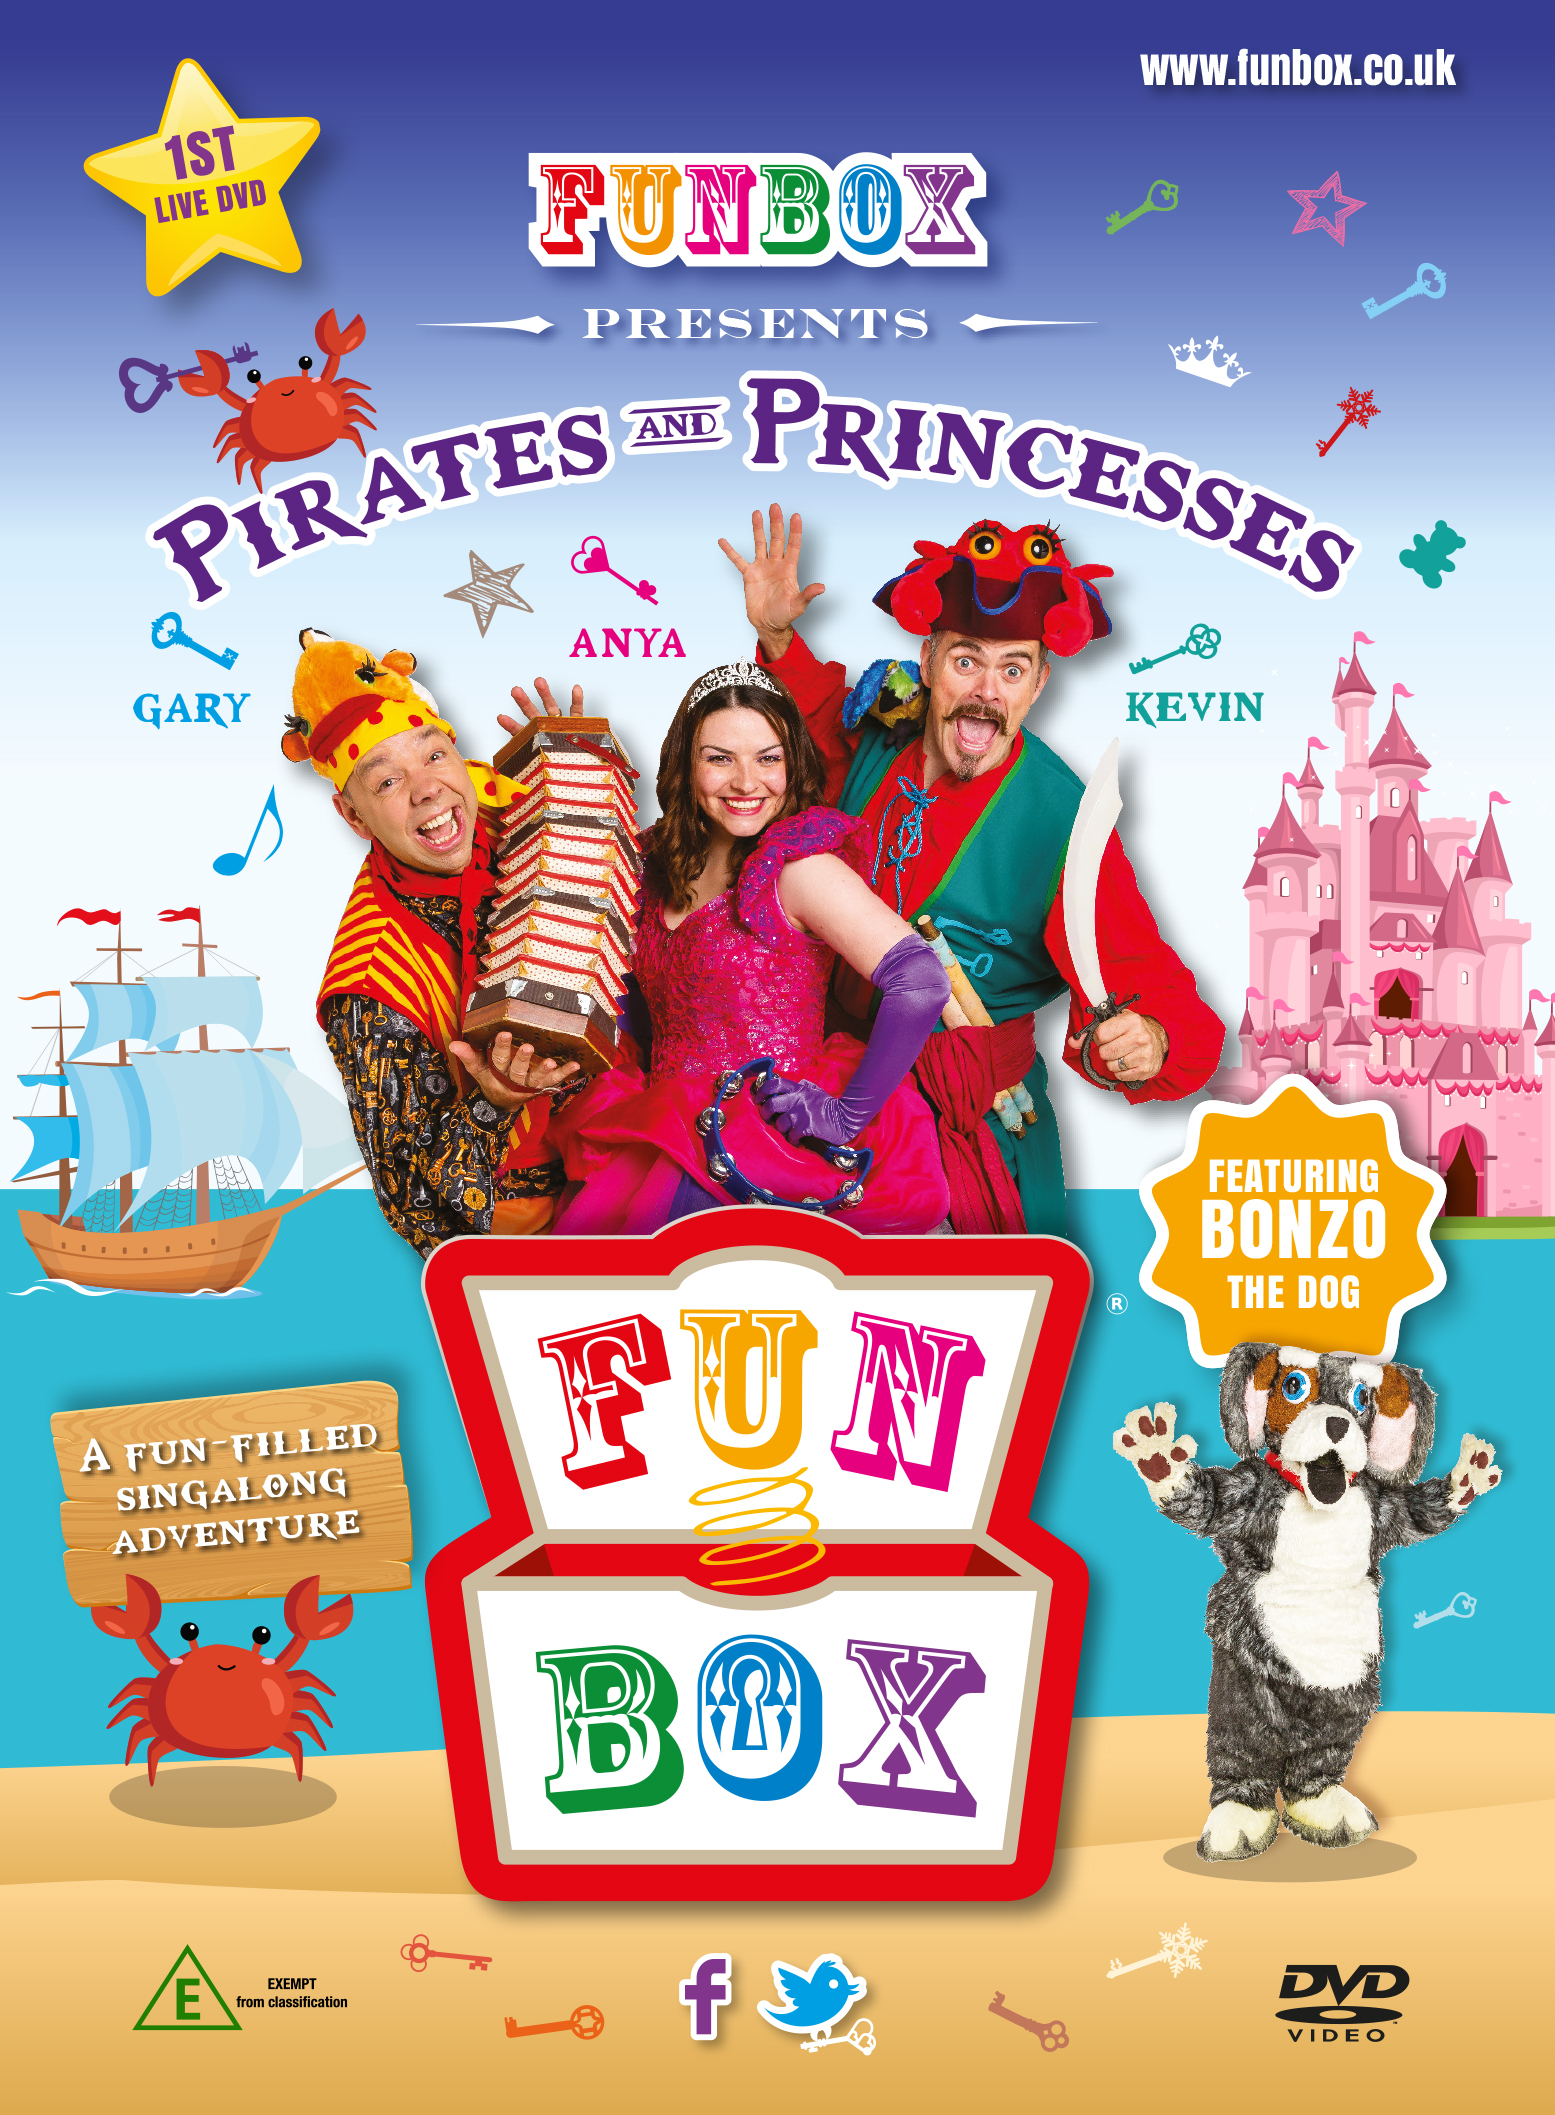 Pirates & Princesses DVD